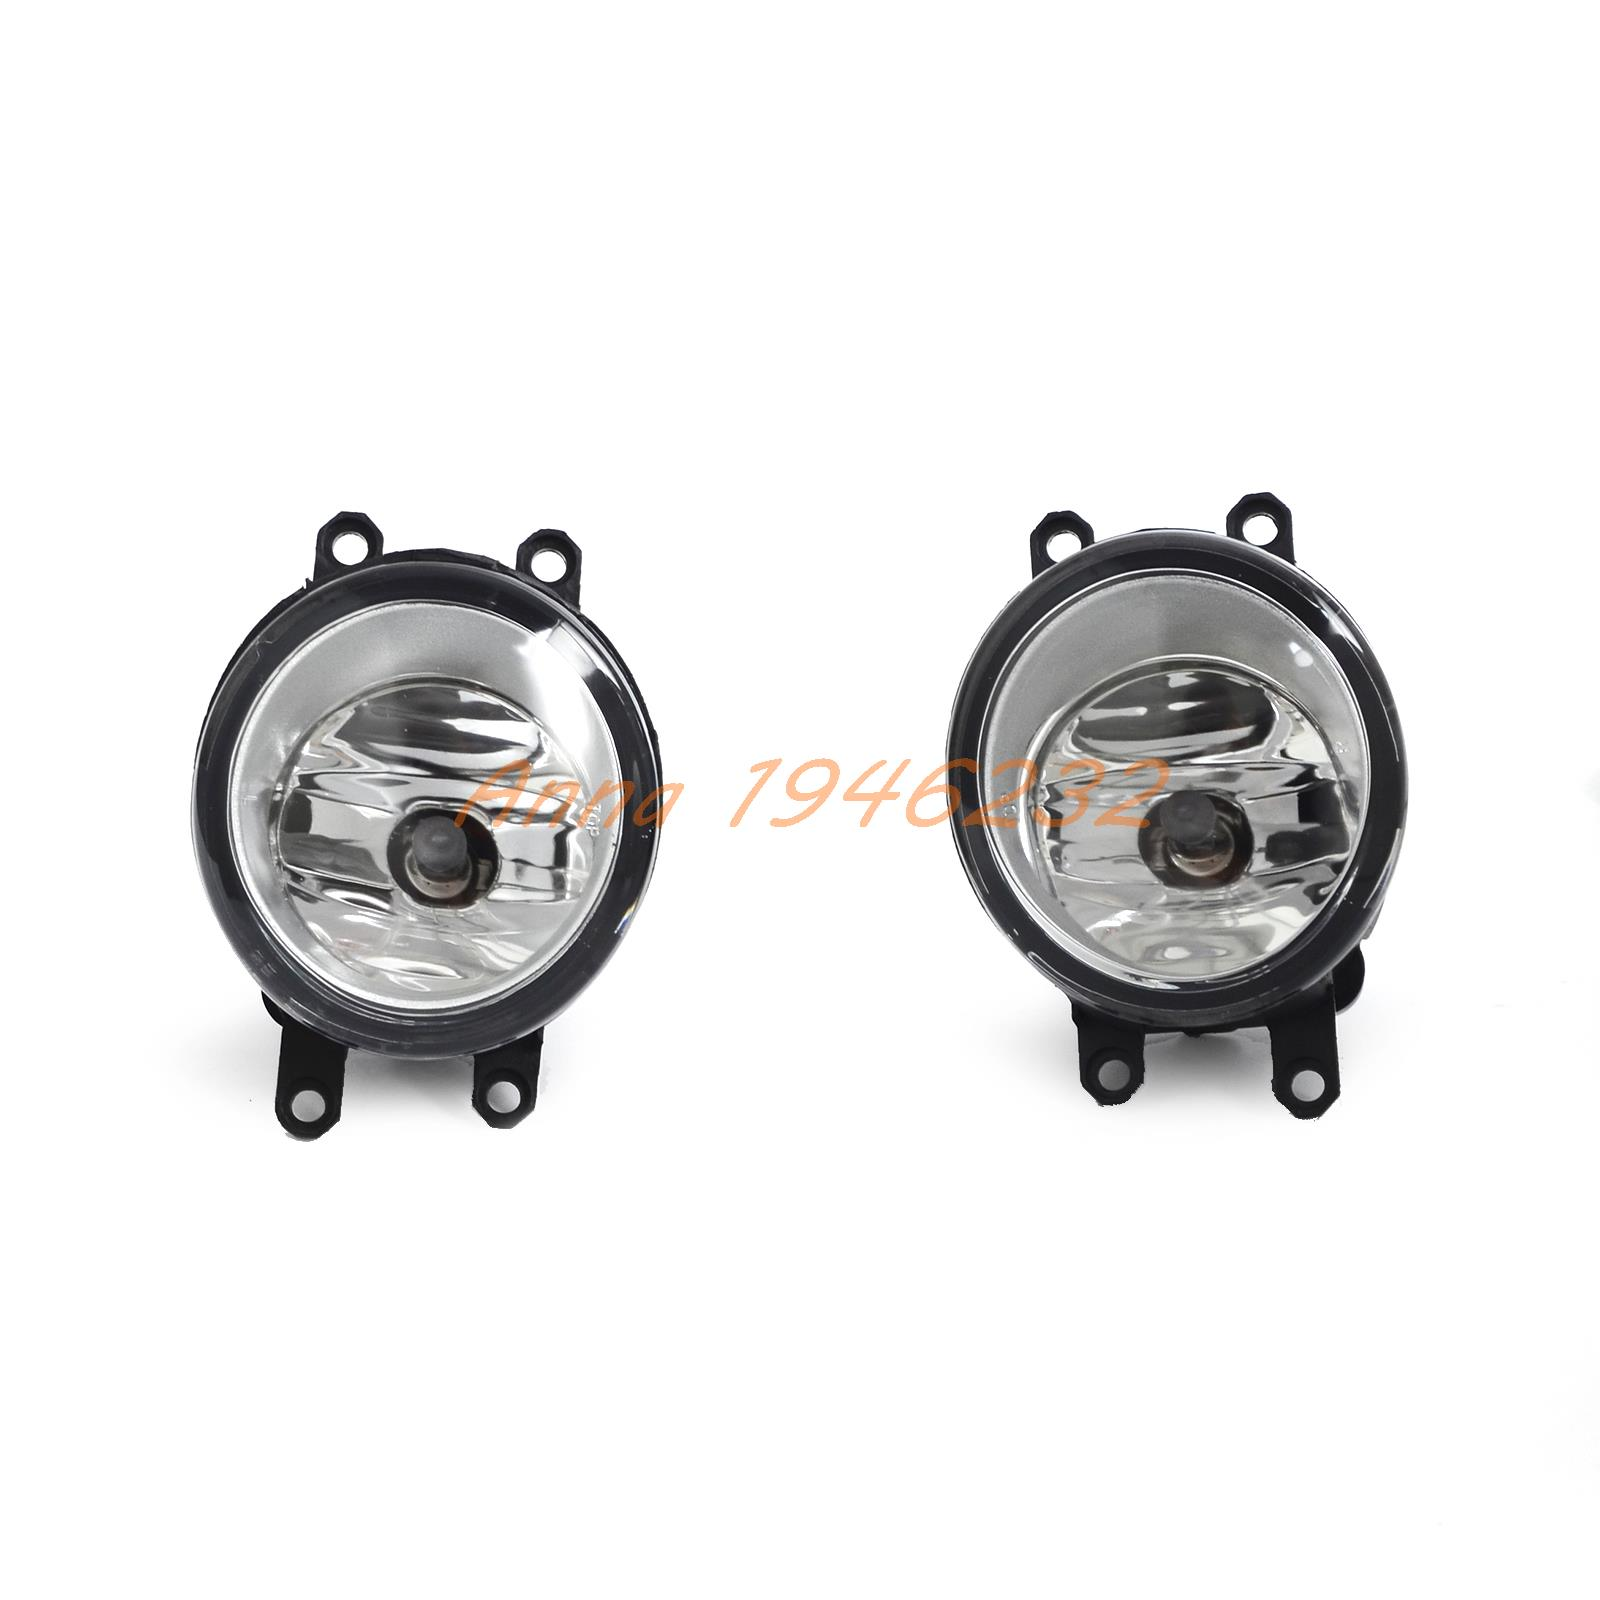 NICECNC Fog Light Lamps with H11 Bulbs For Toyota Avalon Corolla Camry Highlander Hybrid Matrix Prius Sienna Yaris Solara RAV4 набор hammer шланг 3 4 25м соединитель 236 016 пистолет 236 018